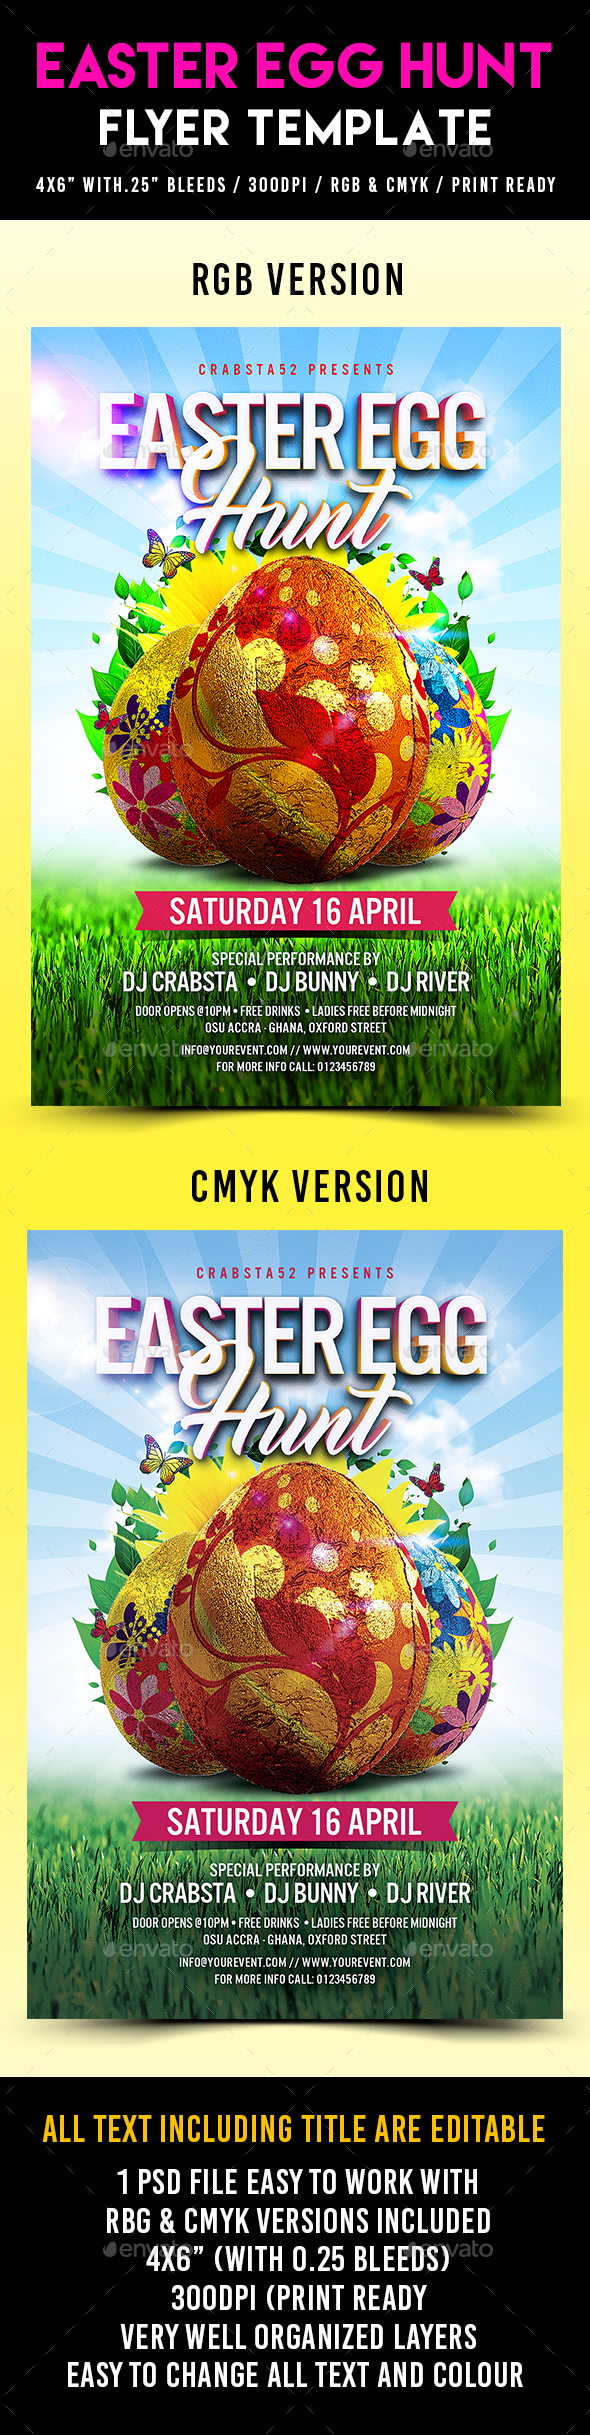 Easter Egg Hunt Flyer Template - Flyers Print Templates